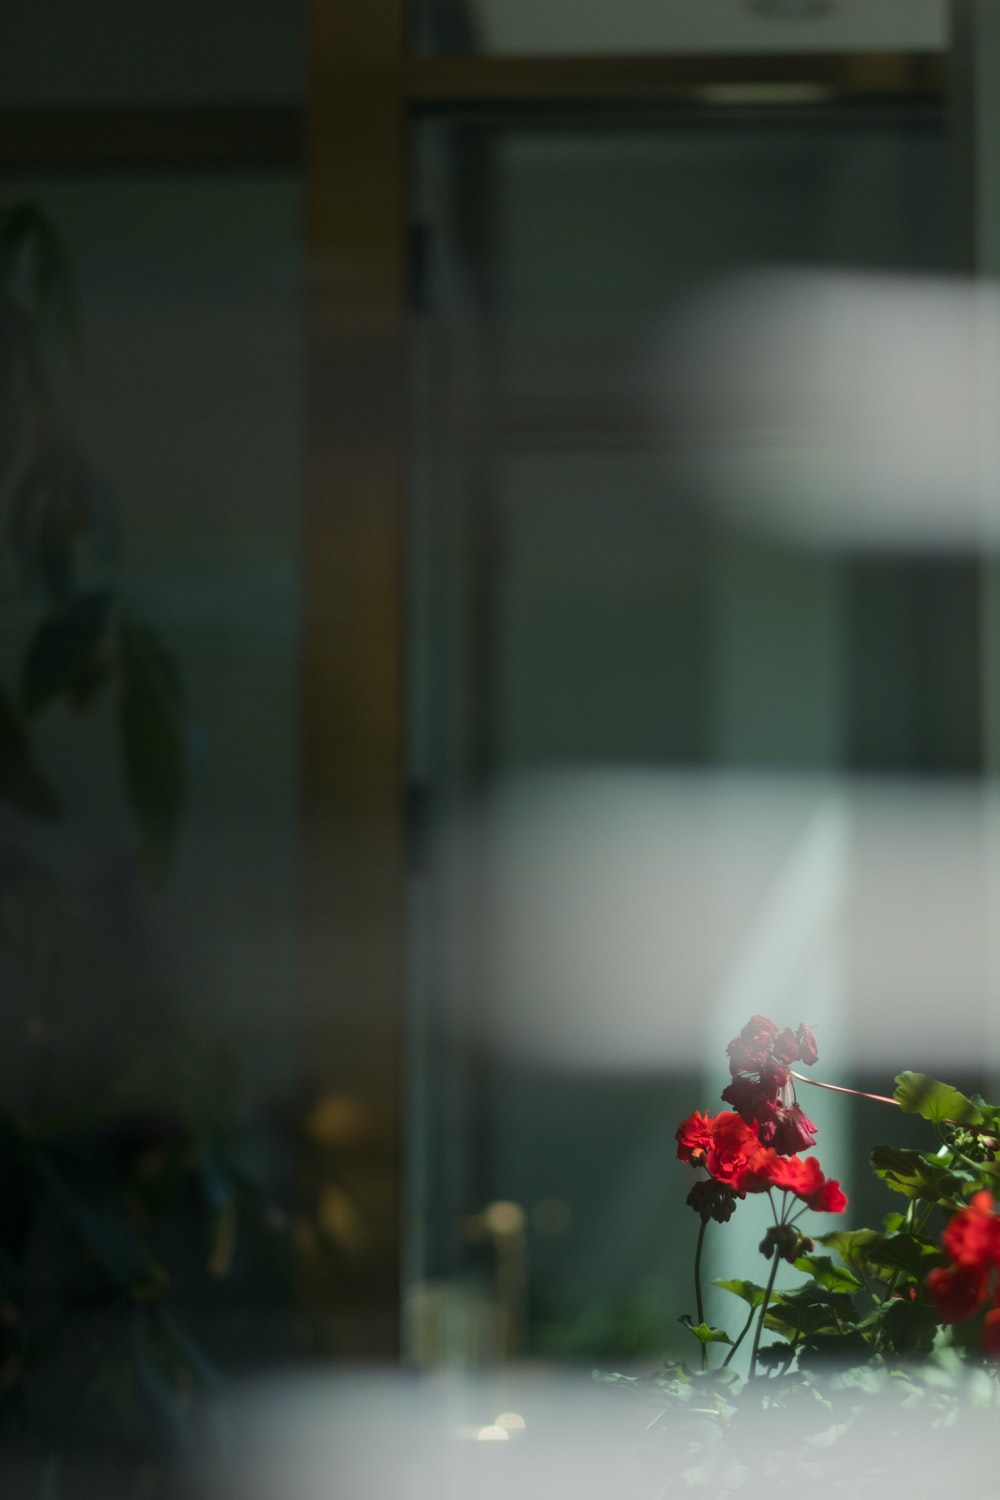 selective focus photography of red petaled flower during daytime